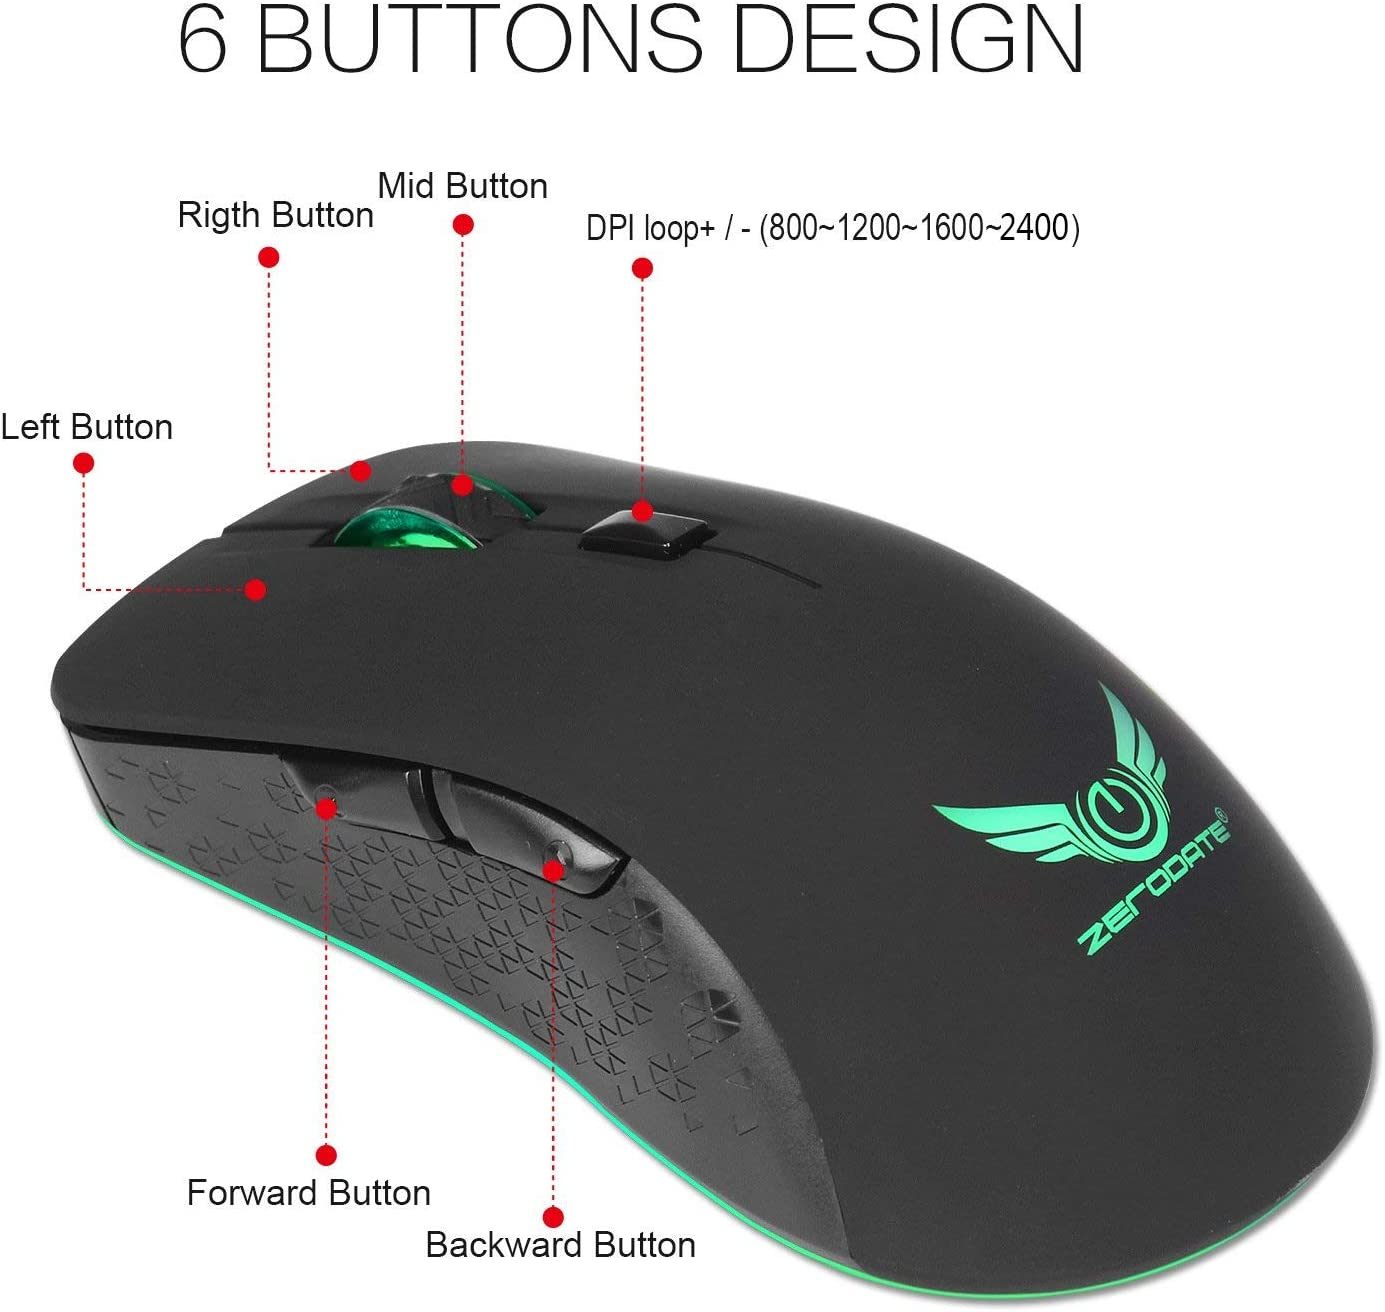 2400//1600//1200//800Dpi Adjustable USB Wireless Rechargeable Mouse for PC//Laptop//Mac JAY-LONG 2.4G High Precision Optical Mouse//Gaming Mouse with Colorful Lights